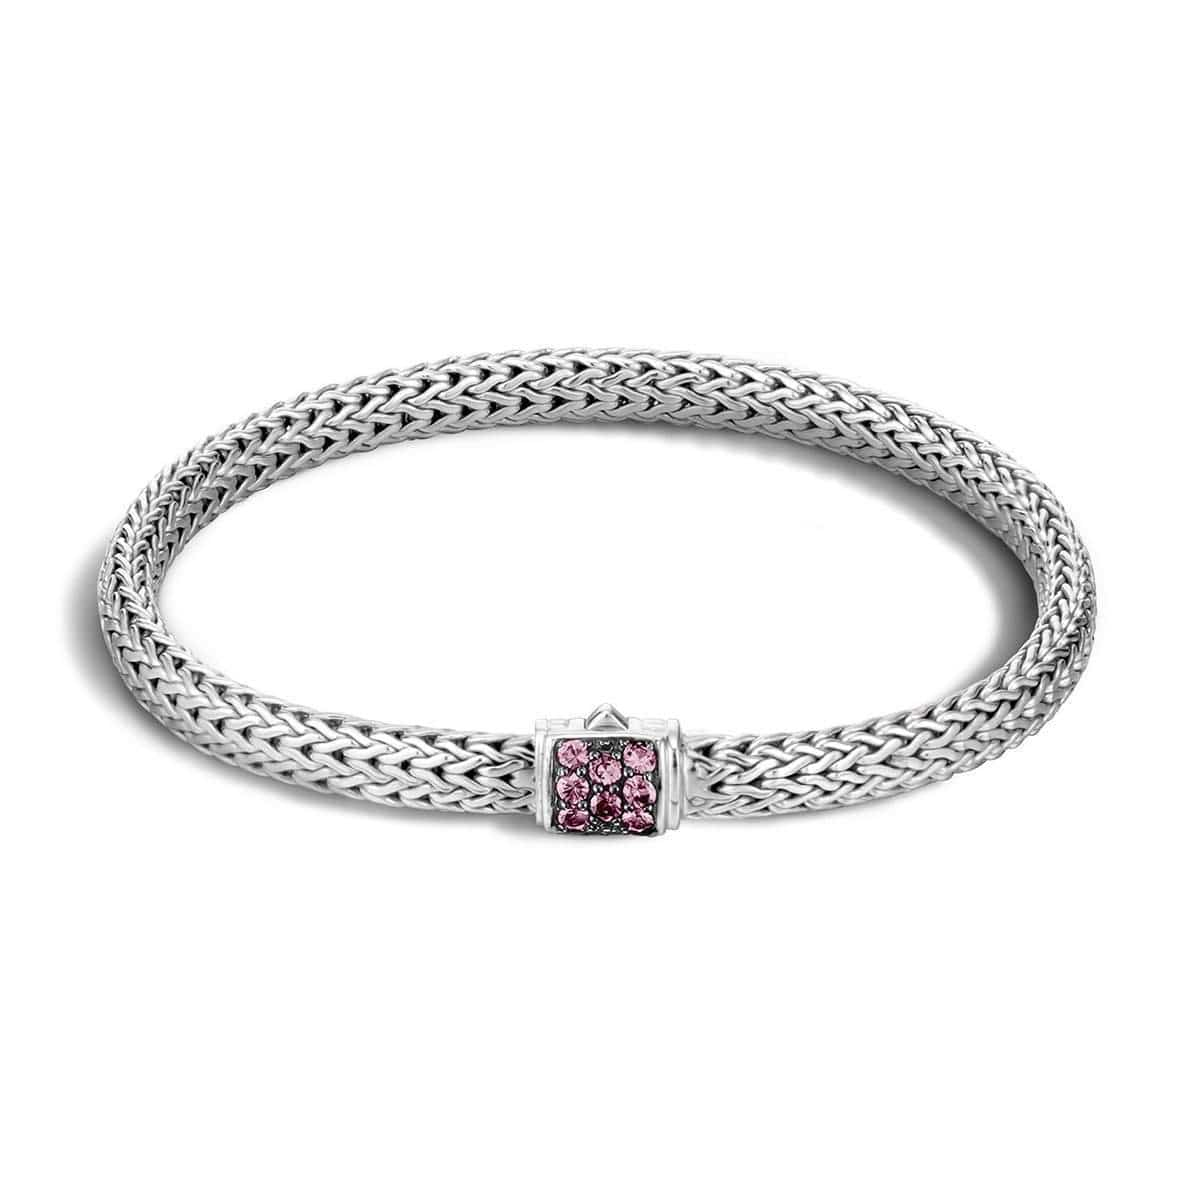 Classic Chain Extra Small Pink Spinel Bracelet - BBS96002SNP-John Hardy-Renee Taylor Gallery